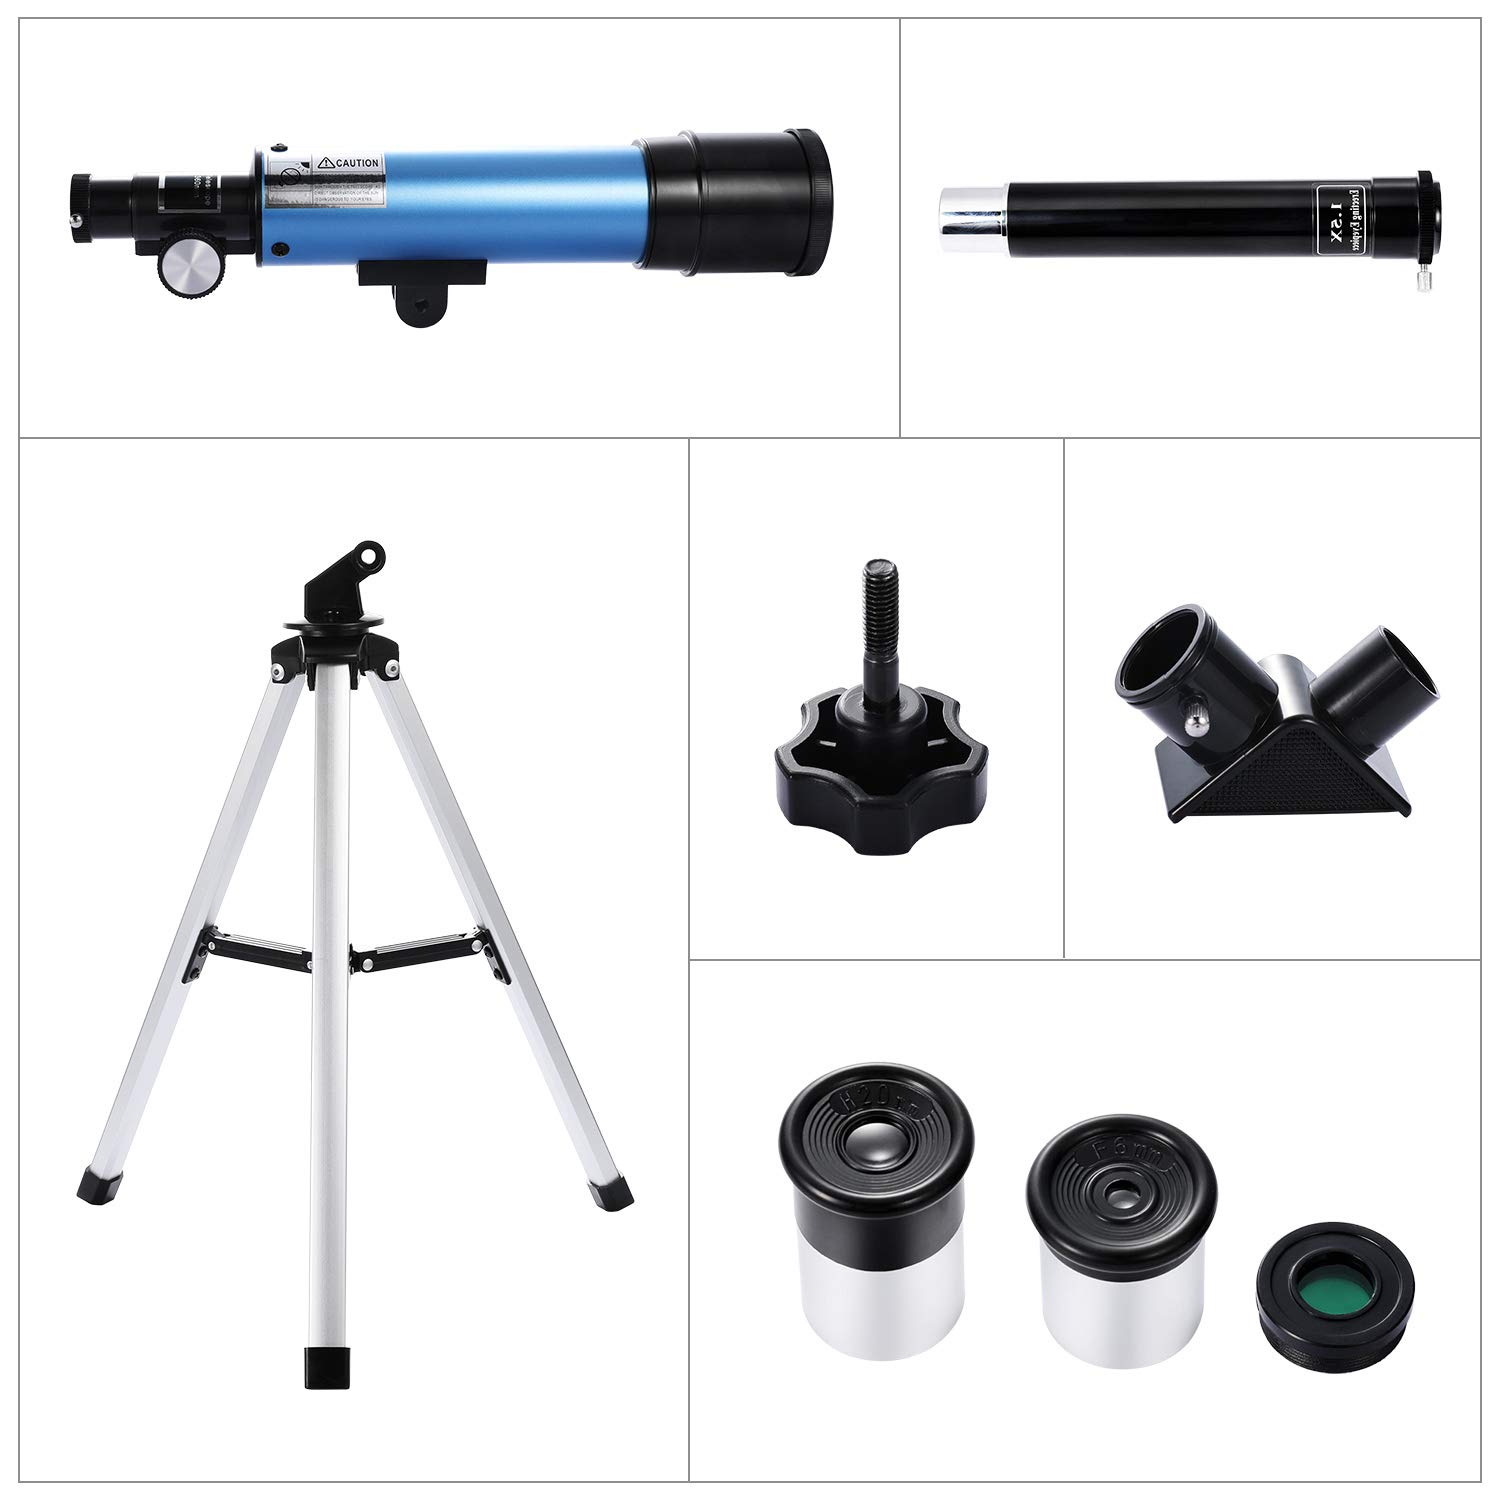 Telescope for Kids, Merkmak Educational Toy for Beginners Science Plastic Tools with Tripod and 3 Magnification Eyepieces 360/50mm Spotting Scope